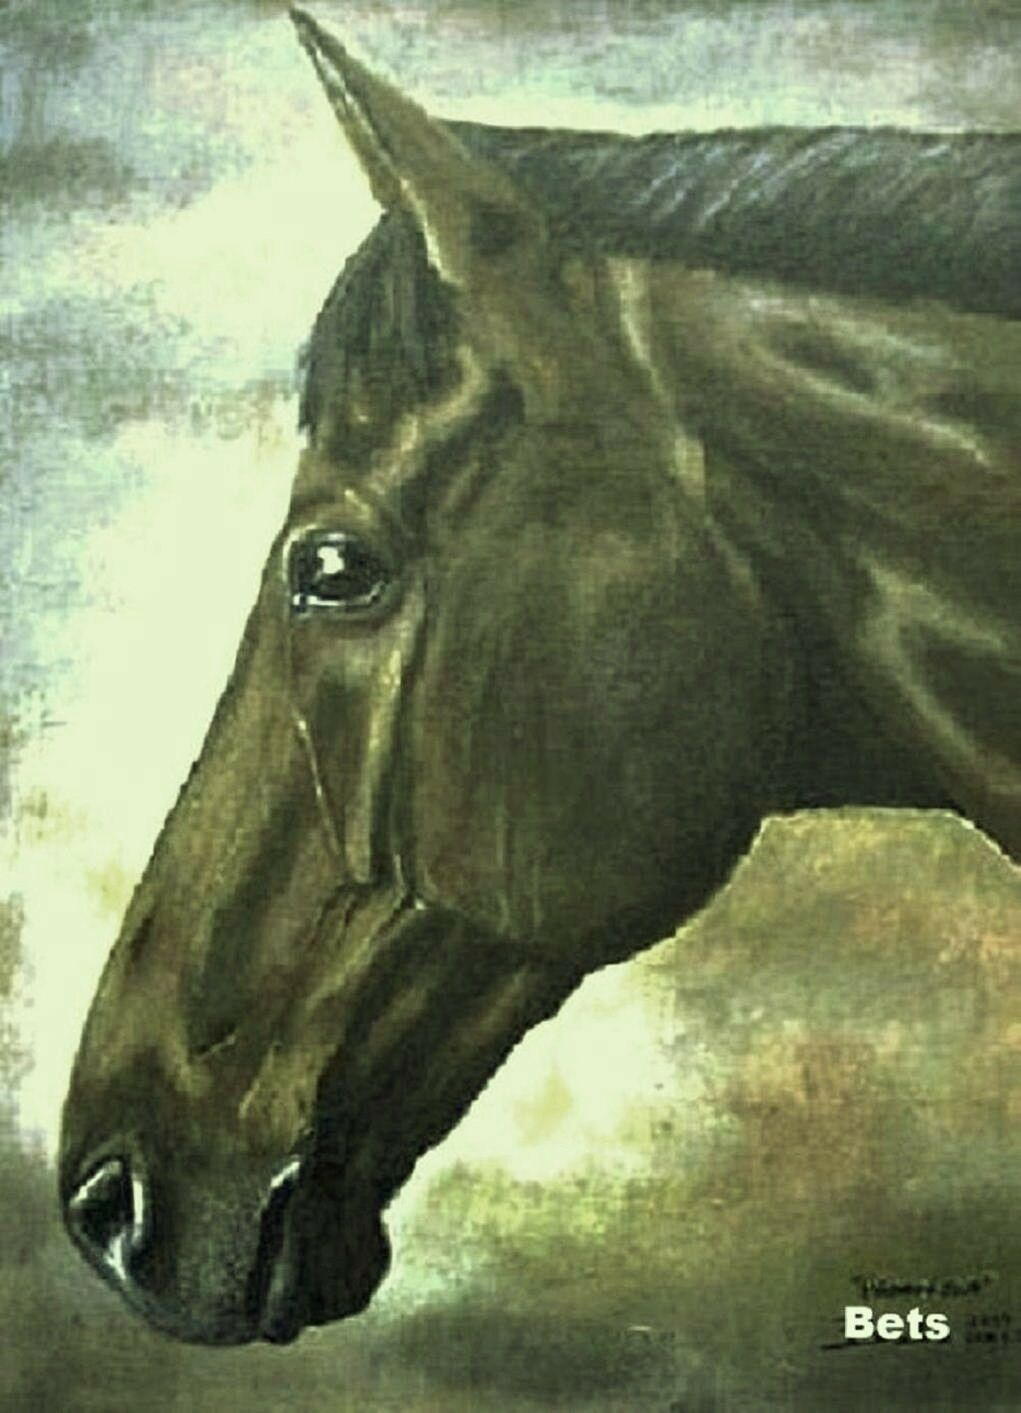 HORSE PRINT  Giclee BAY Horse PRINCETON artist BETS 5 COLORS print size 14 X 18  the lowest price